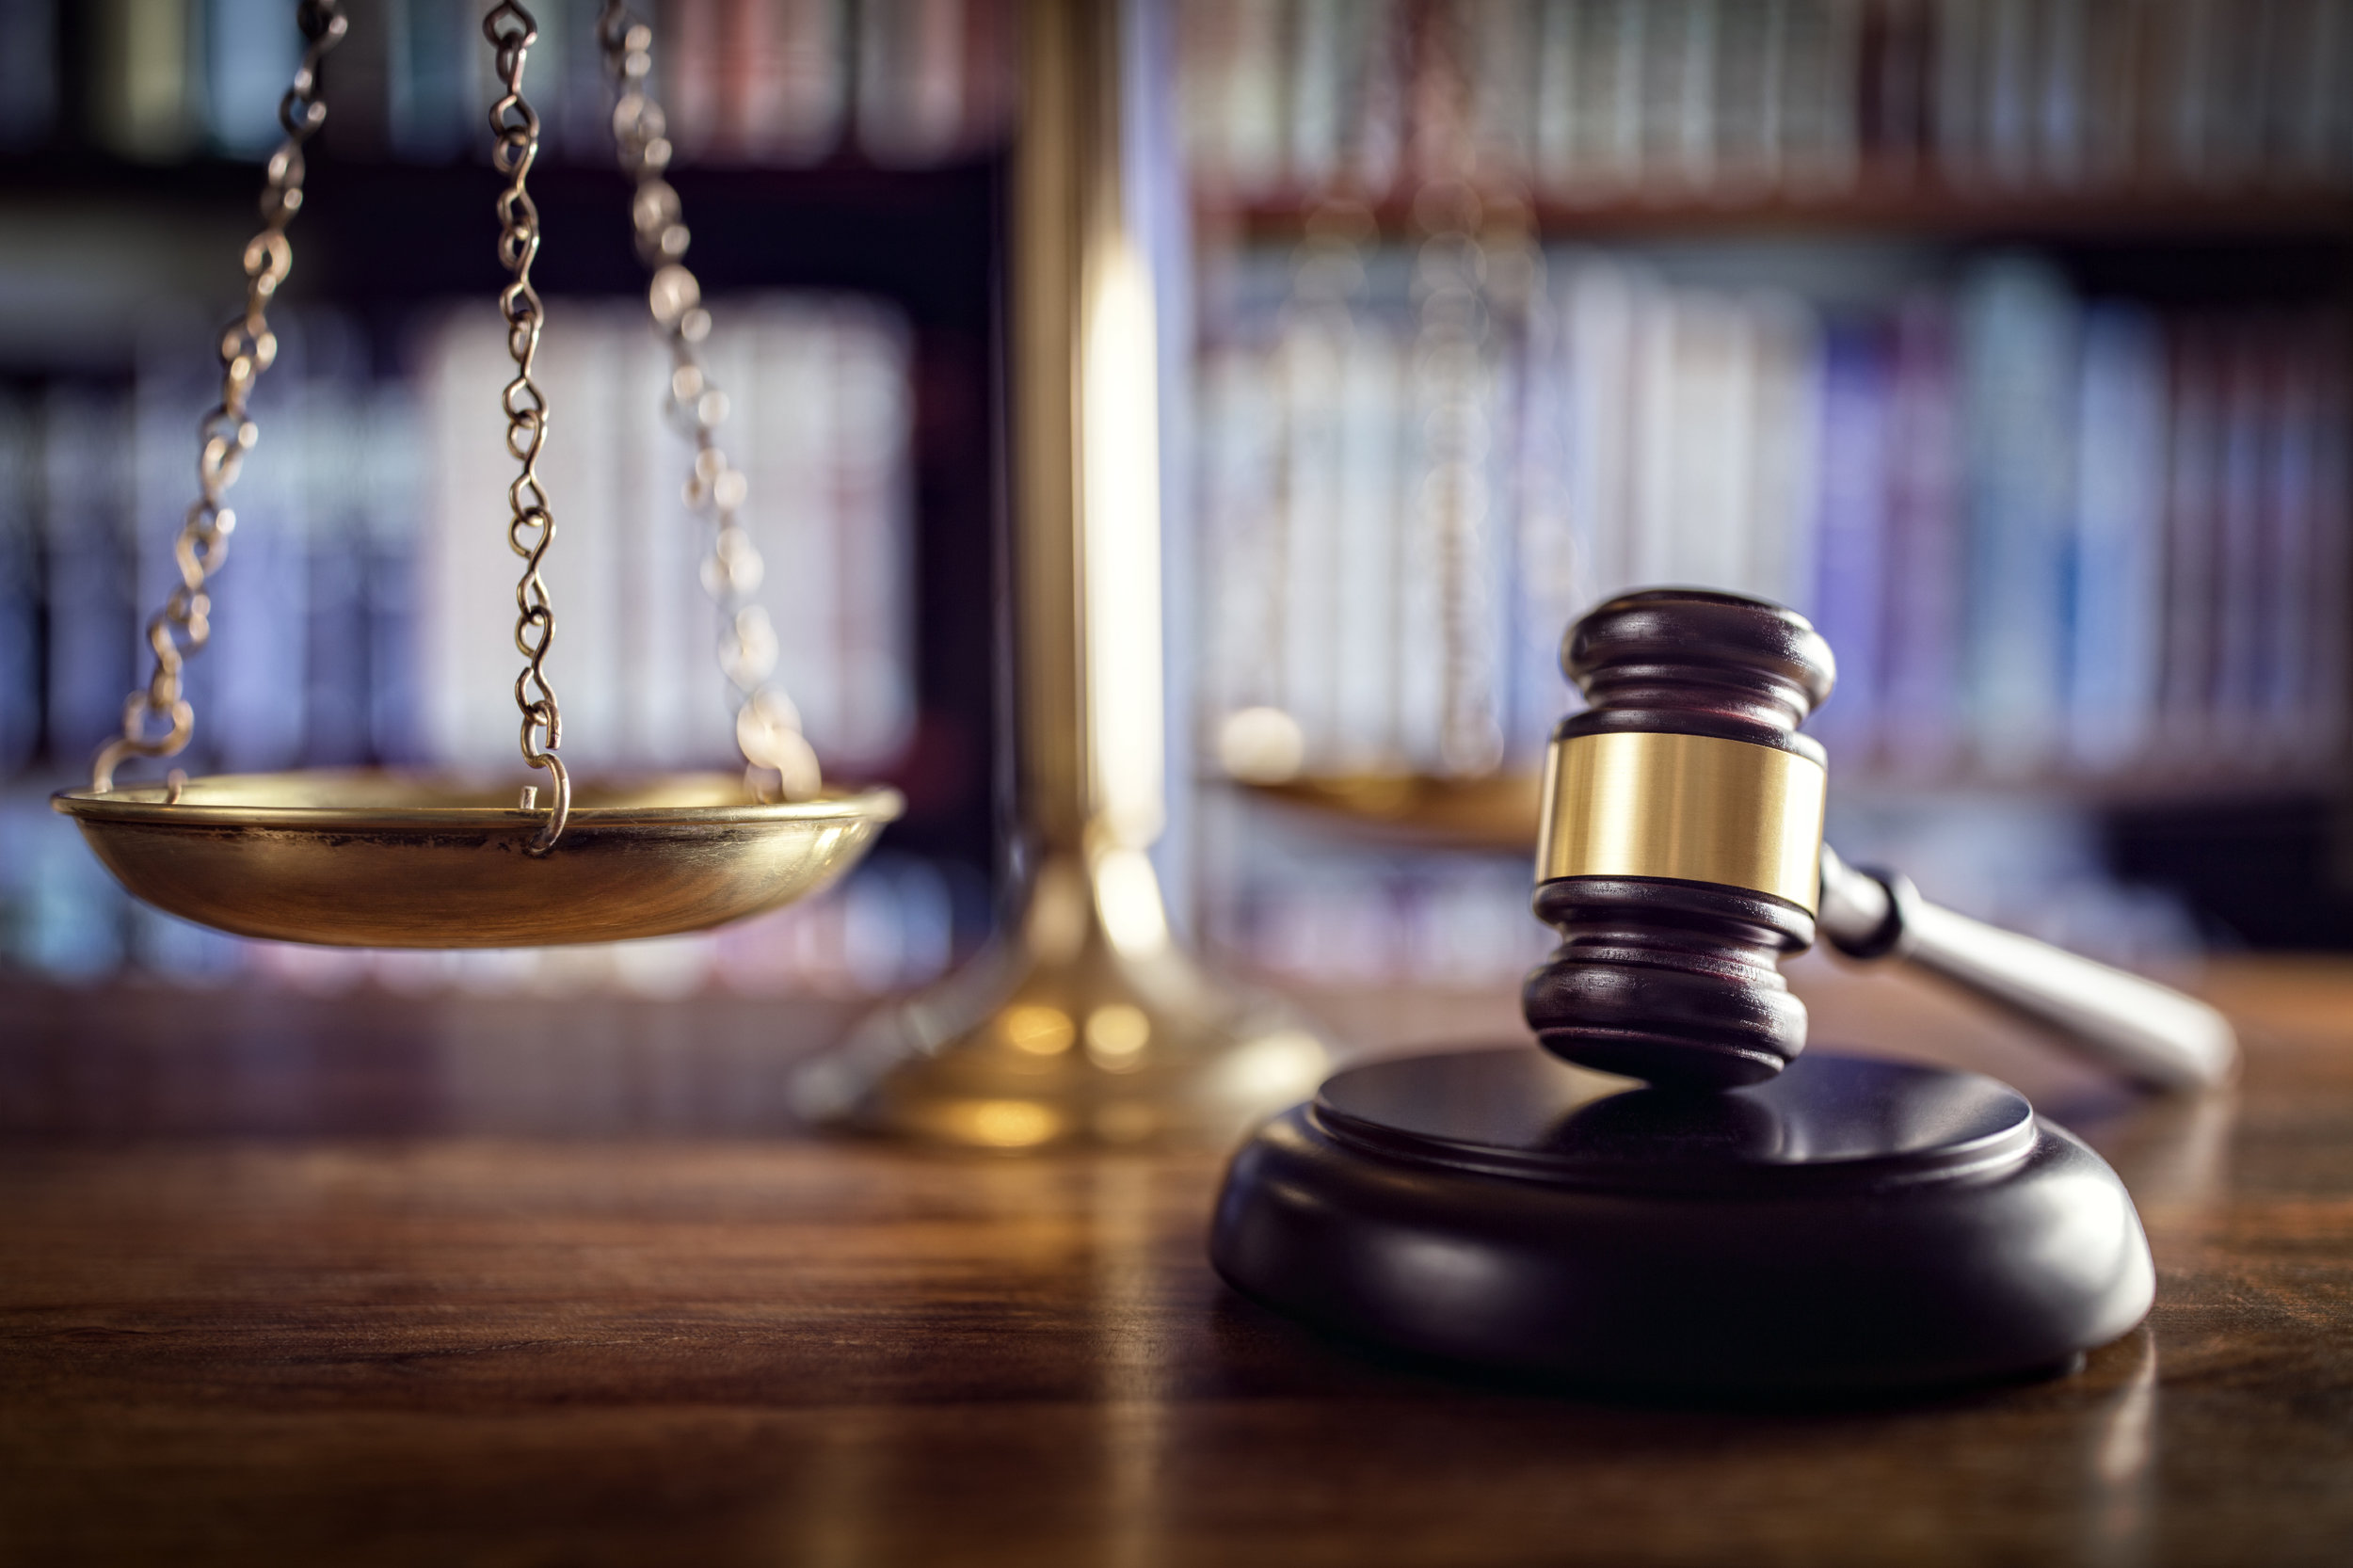 Appellate Court Representation - Get aggressive appellate court representation that pursues all legal options possible. Leverage provisional remedies, emergency orders, and injunctions, to fend off legal setbacks or expedite legal proceedings in your favor.